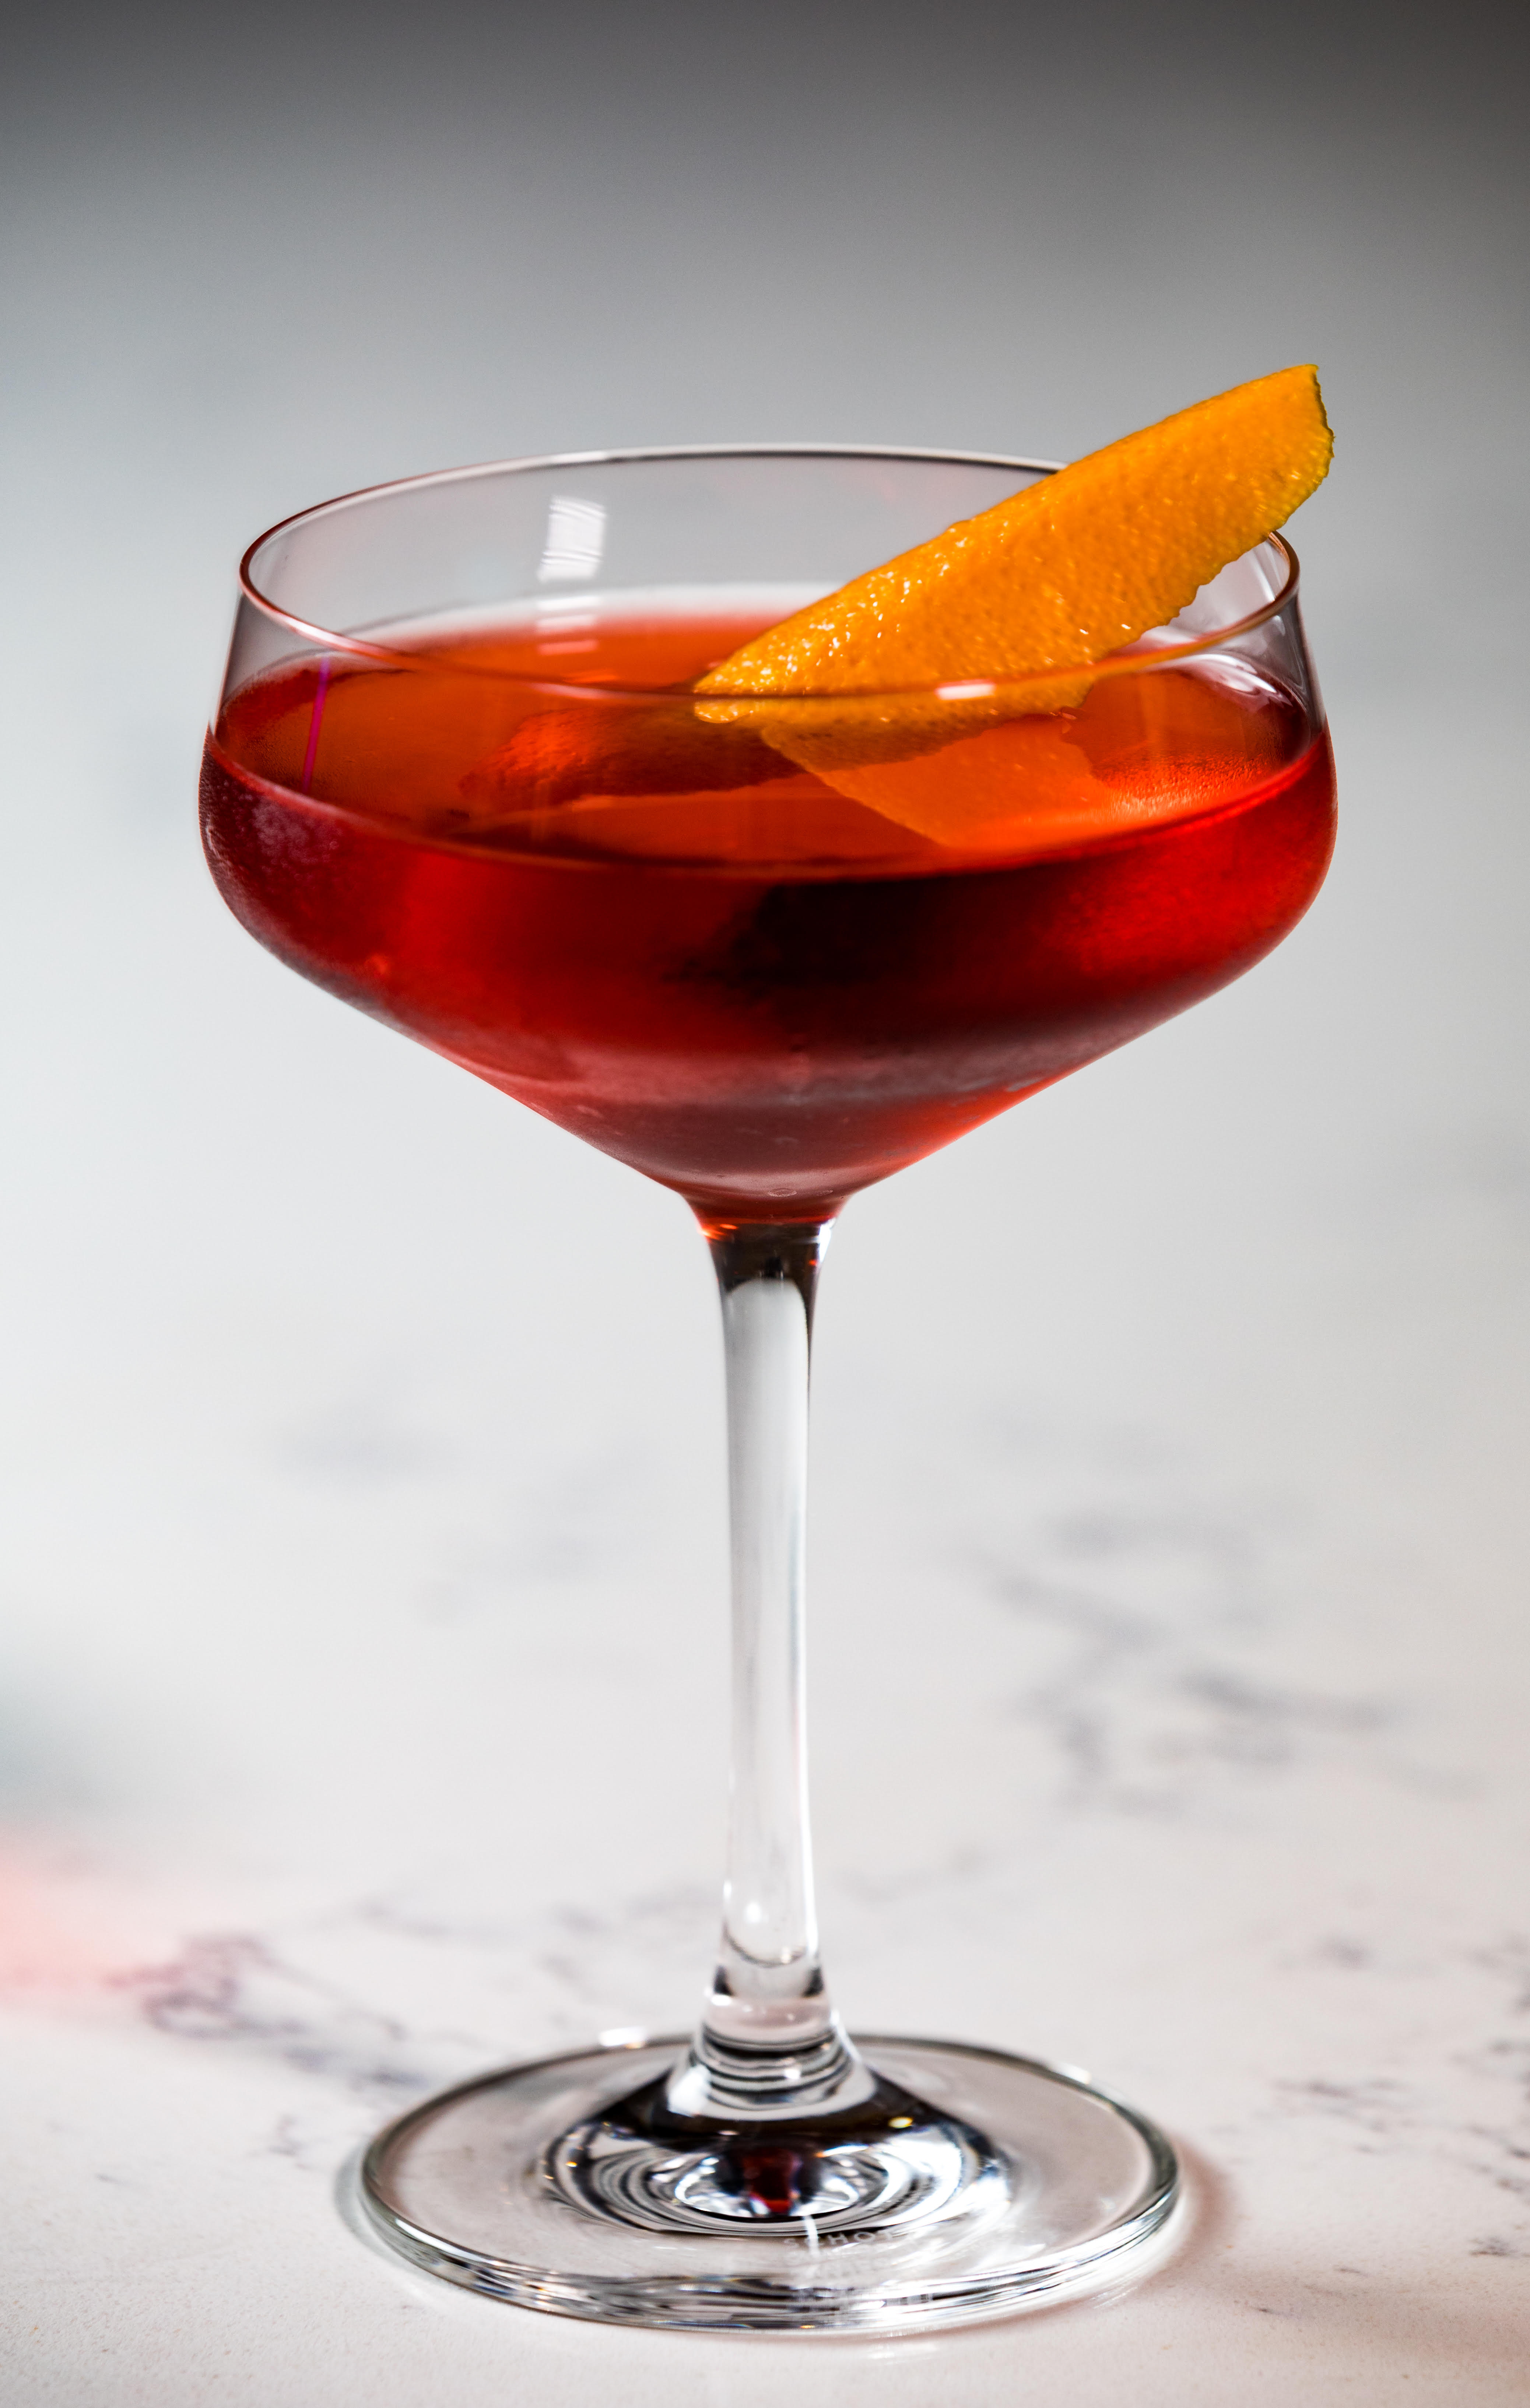 A Negroni in a glass.